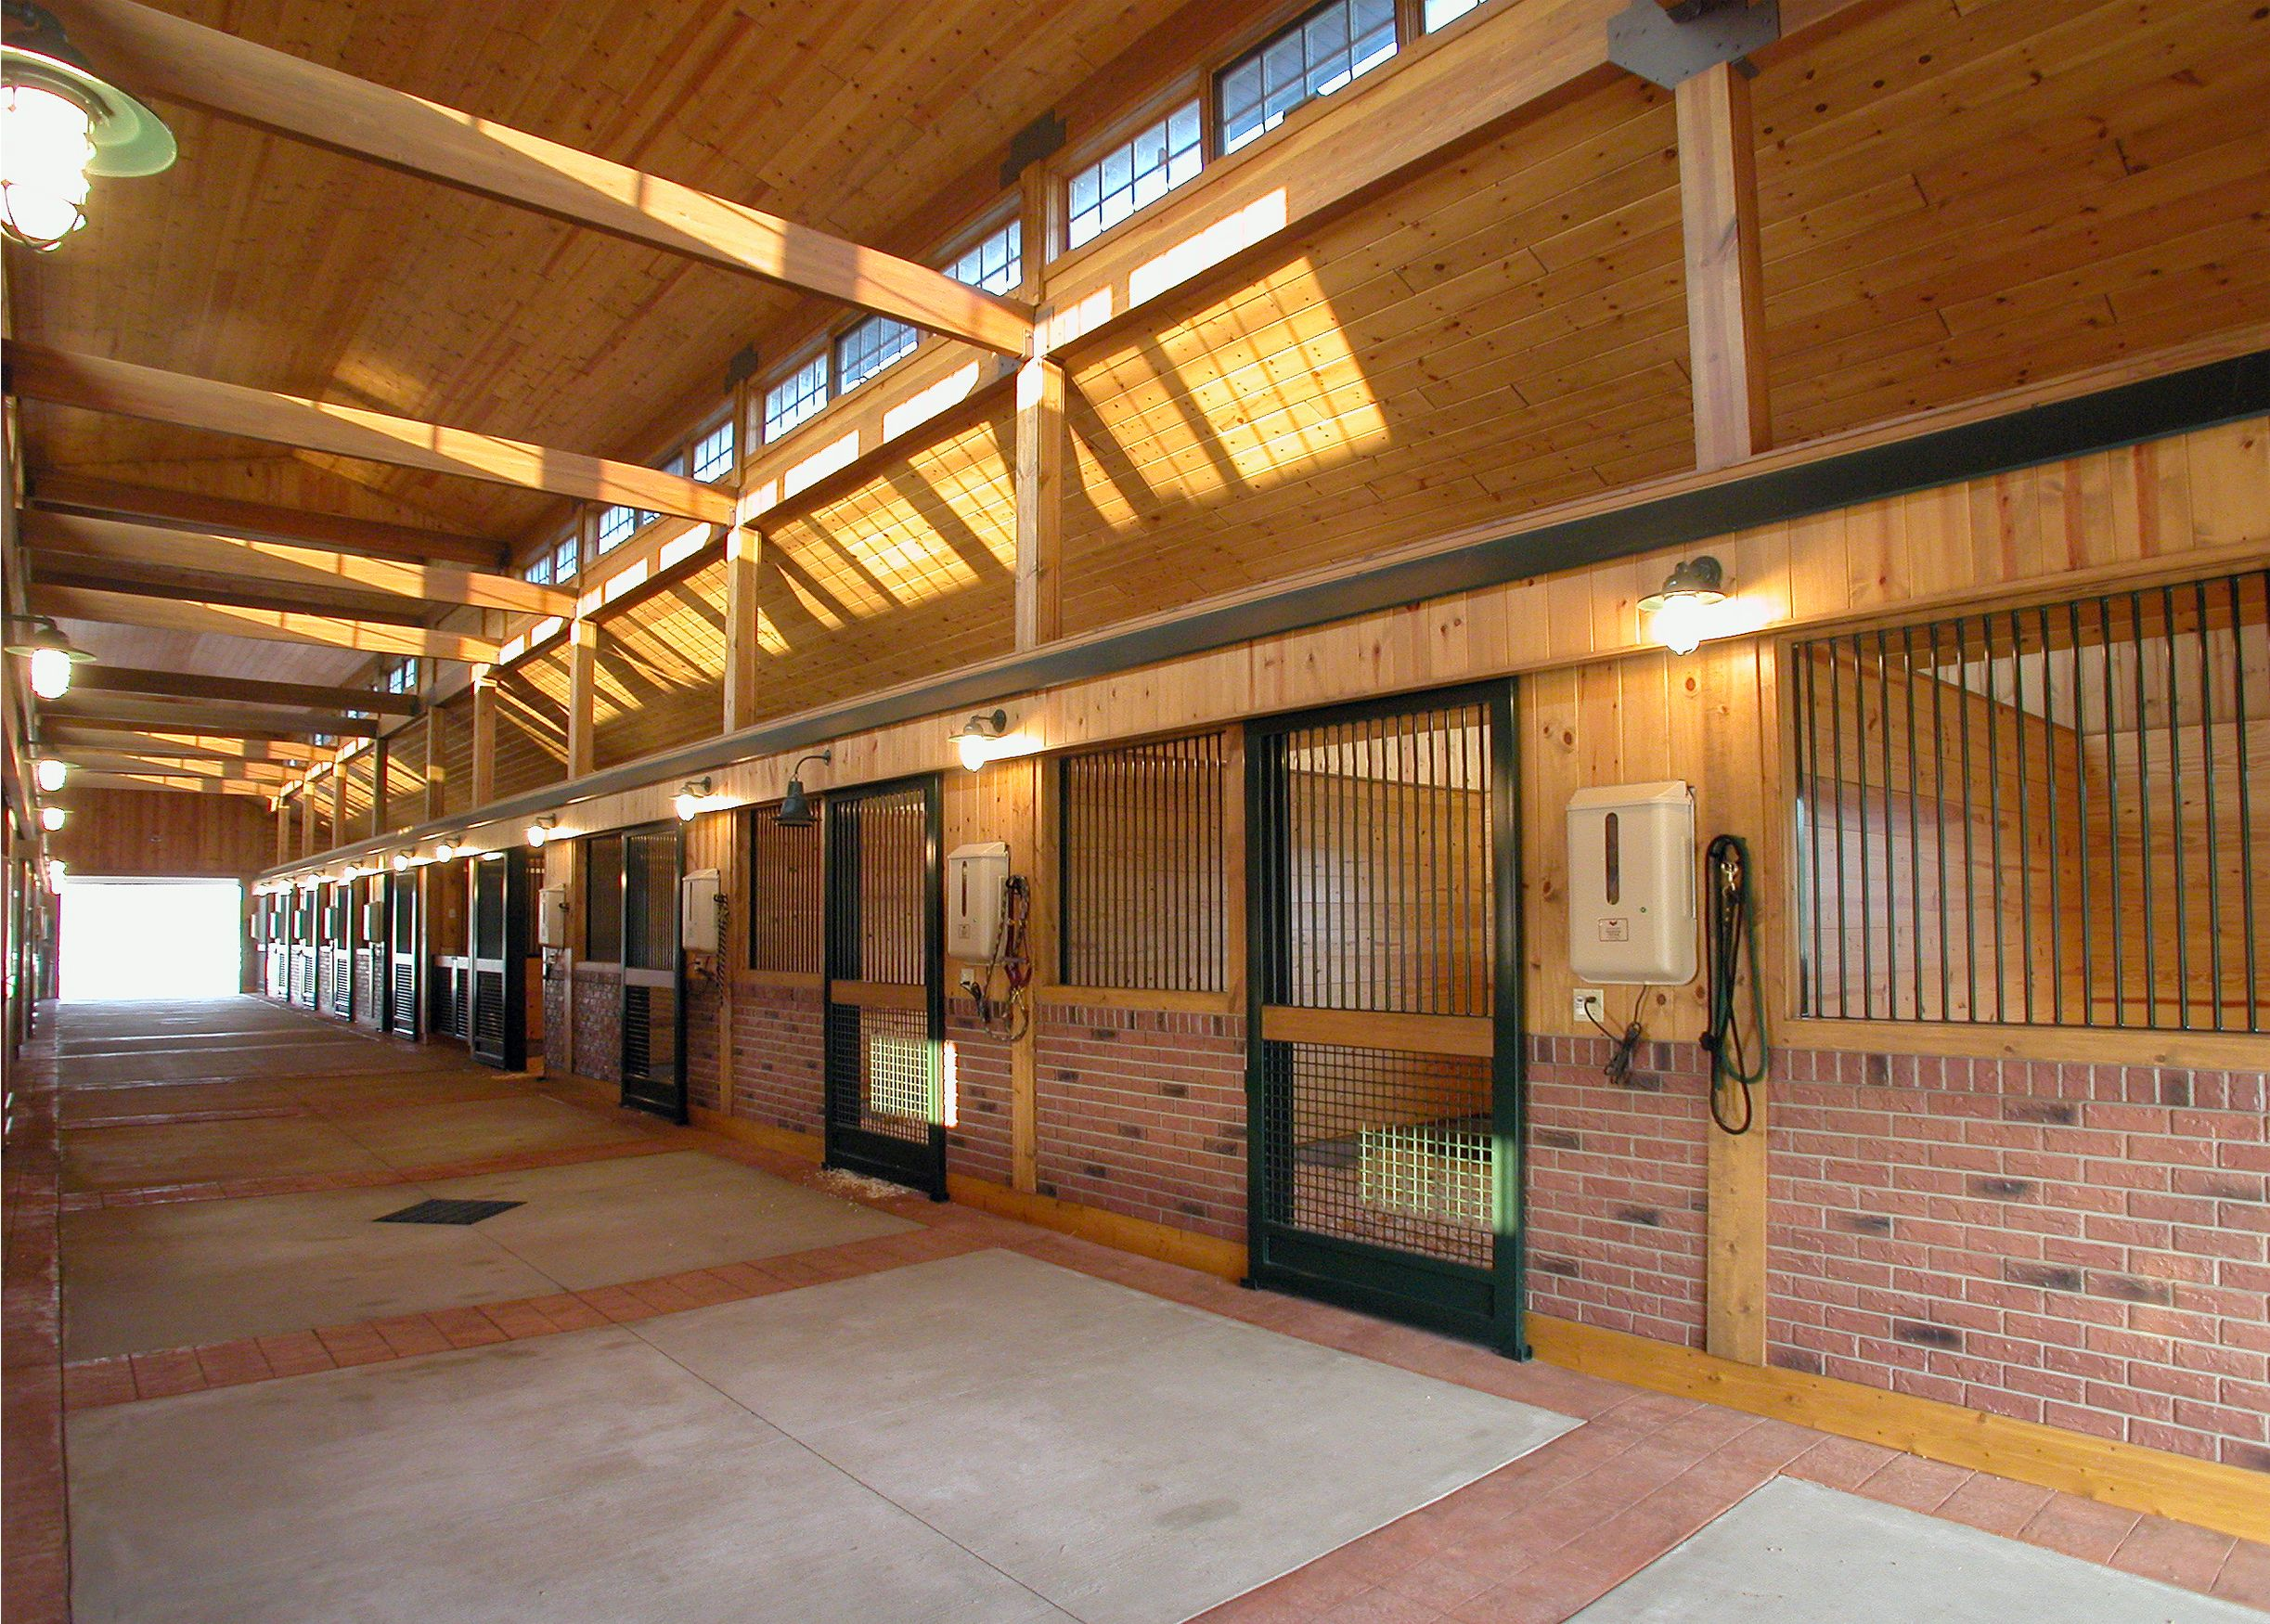 Horse Stables And Barns : Aisle view in a horse barn designed by gh gralla equine